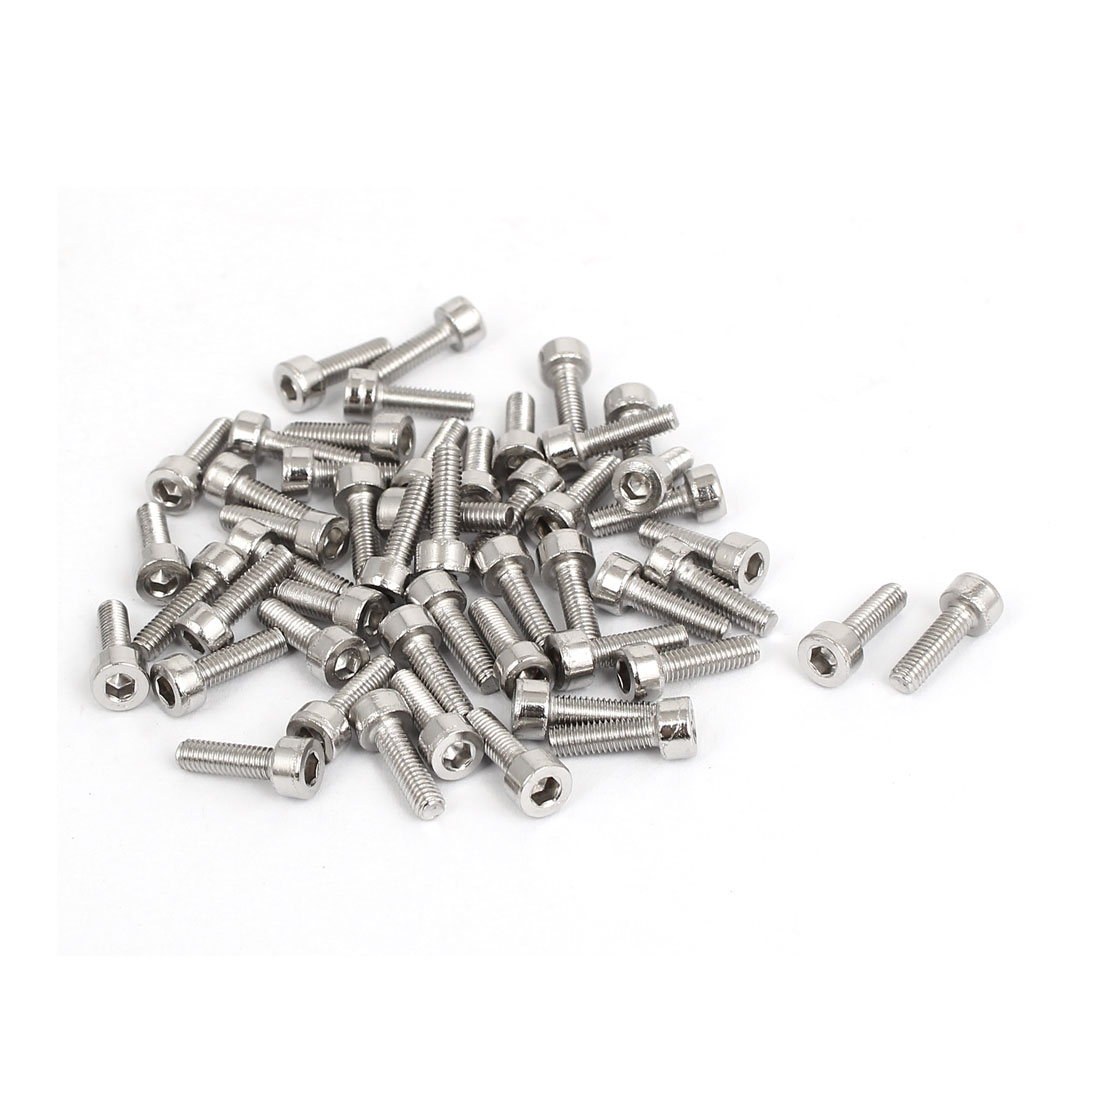 50pcs 2.5mm Stainless Steel Hex Key Socket Head Cap Screws Bolts M3x0.5mmx10mm